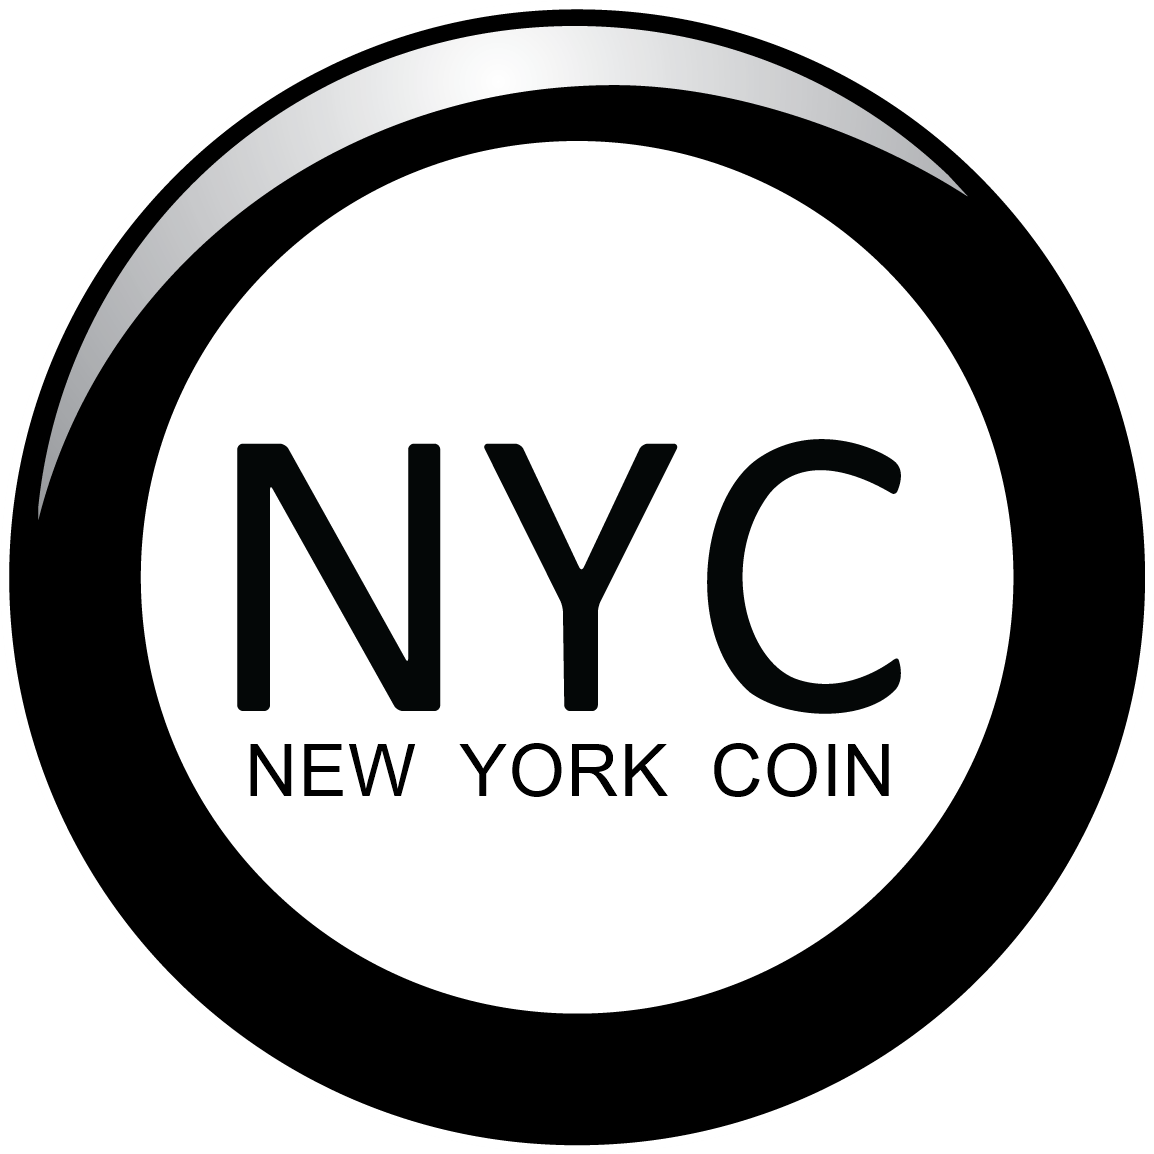 Litecoin New York